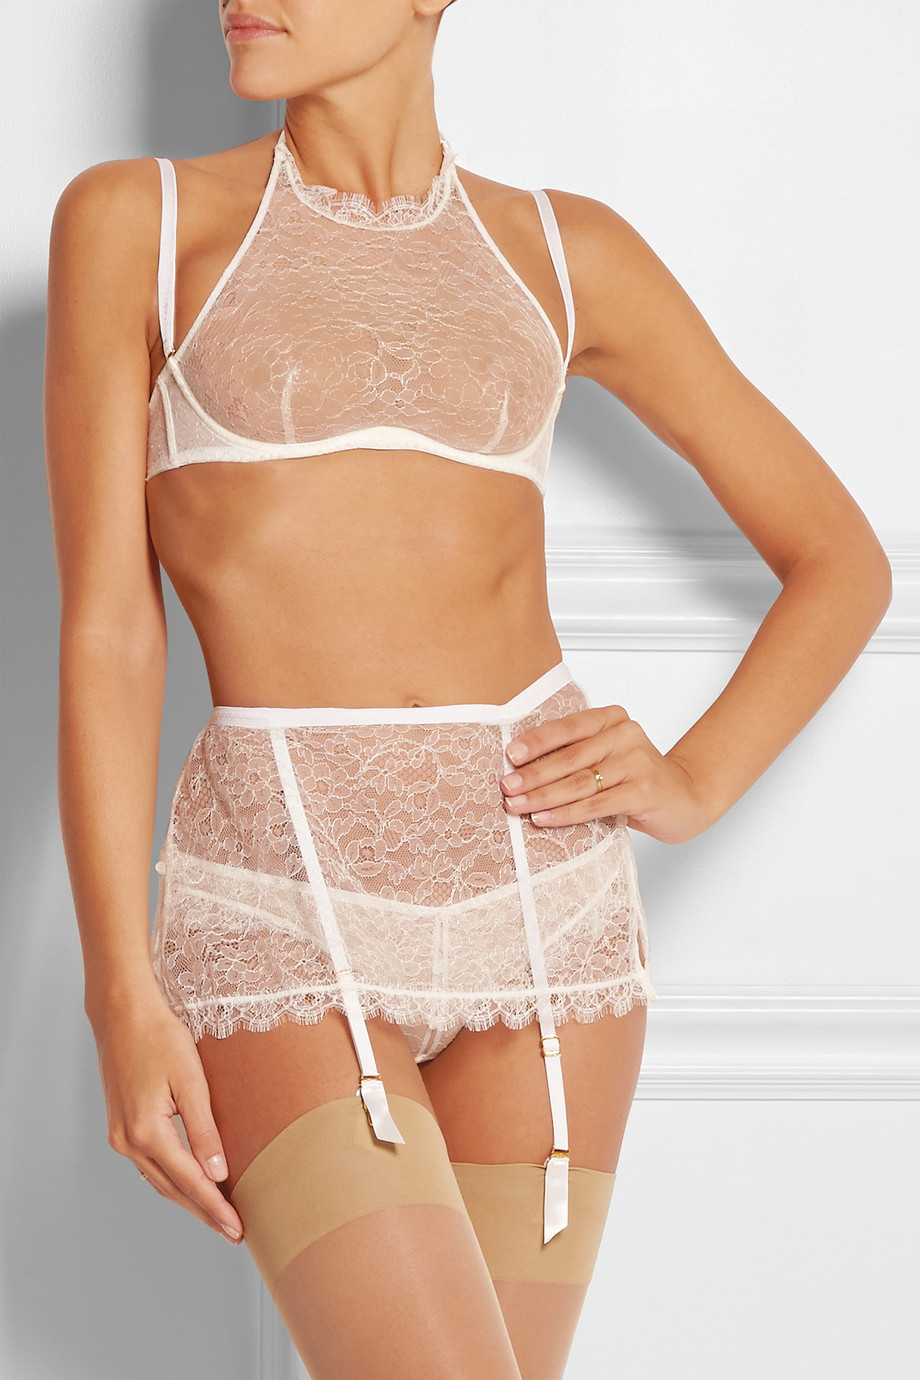 540cf39782 Agent Provocateur Annoushka Lace Underwired Bra in White - Lyst